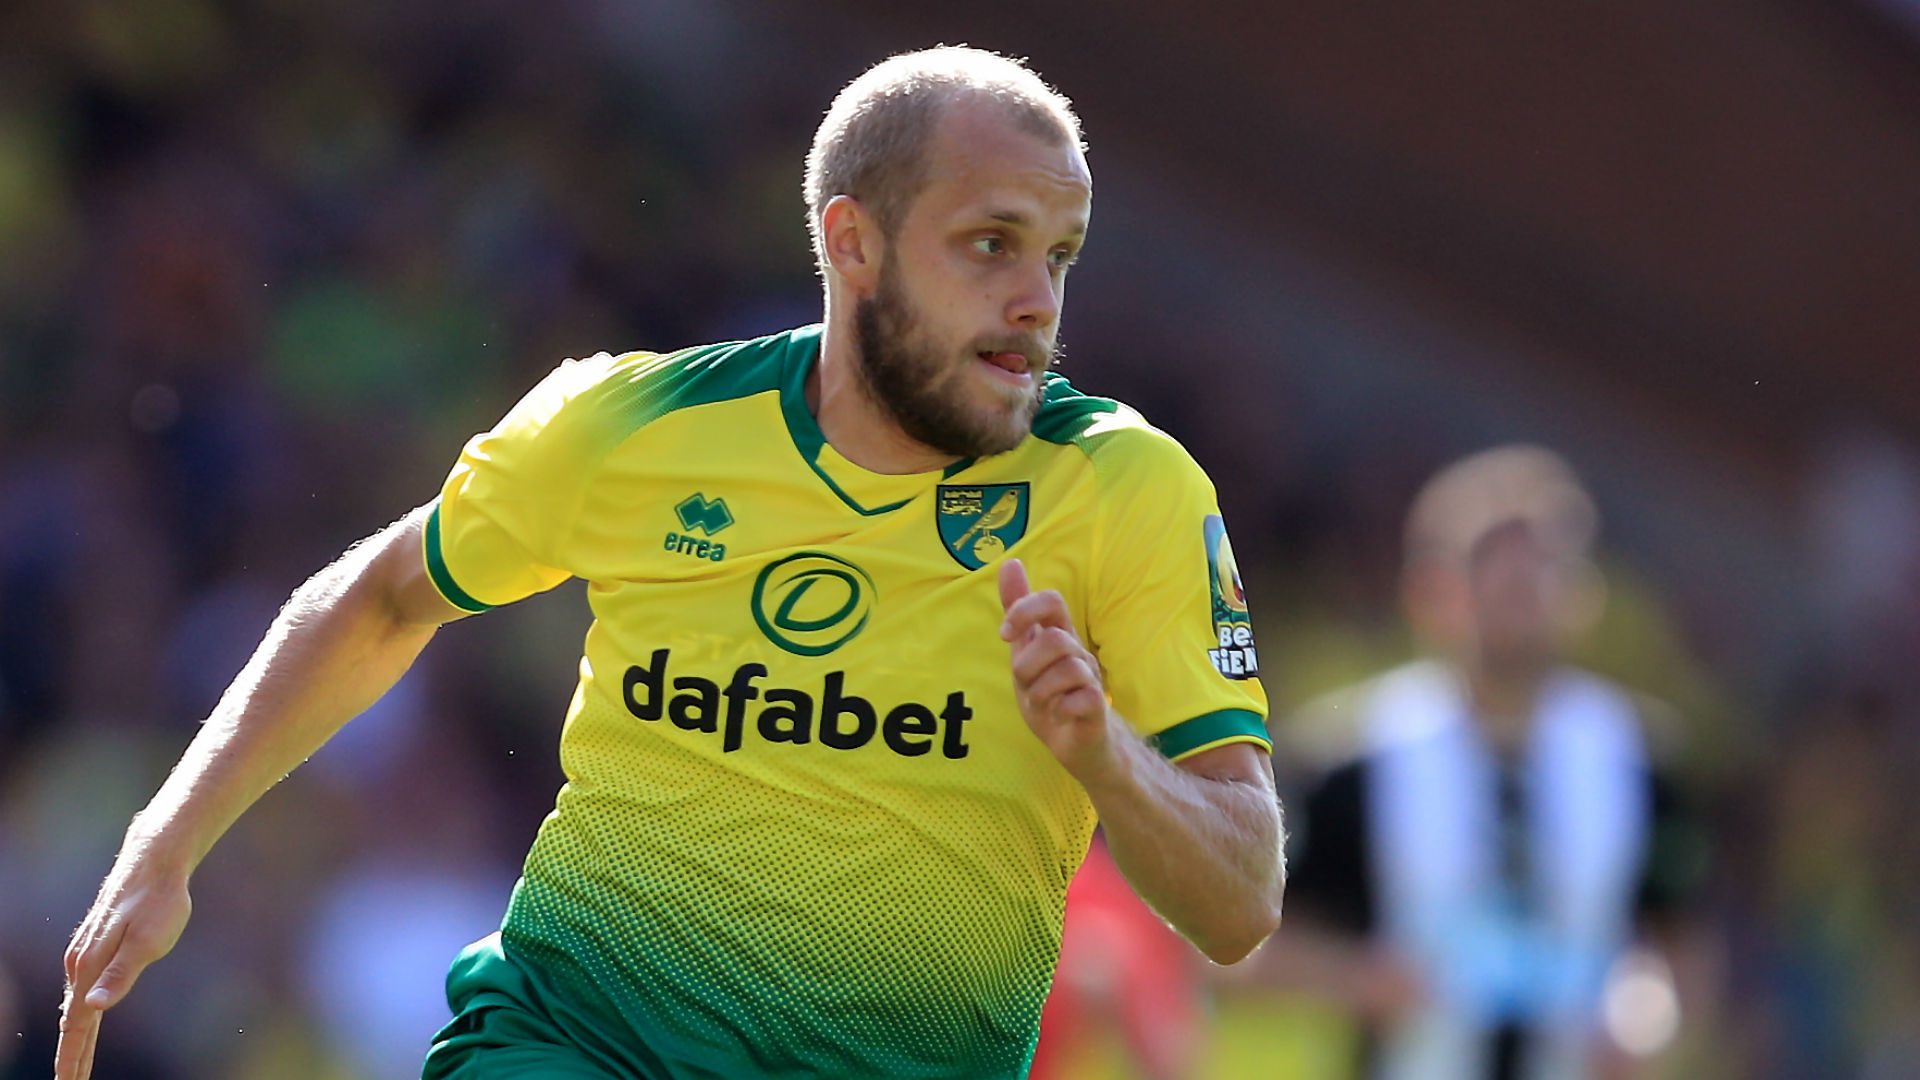 'I stole the ball' to secure hat-trick says Norwich City hero Pukki